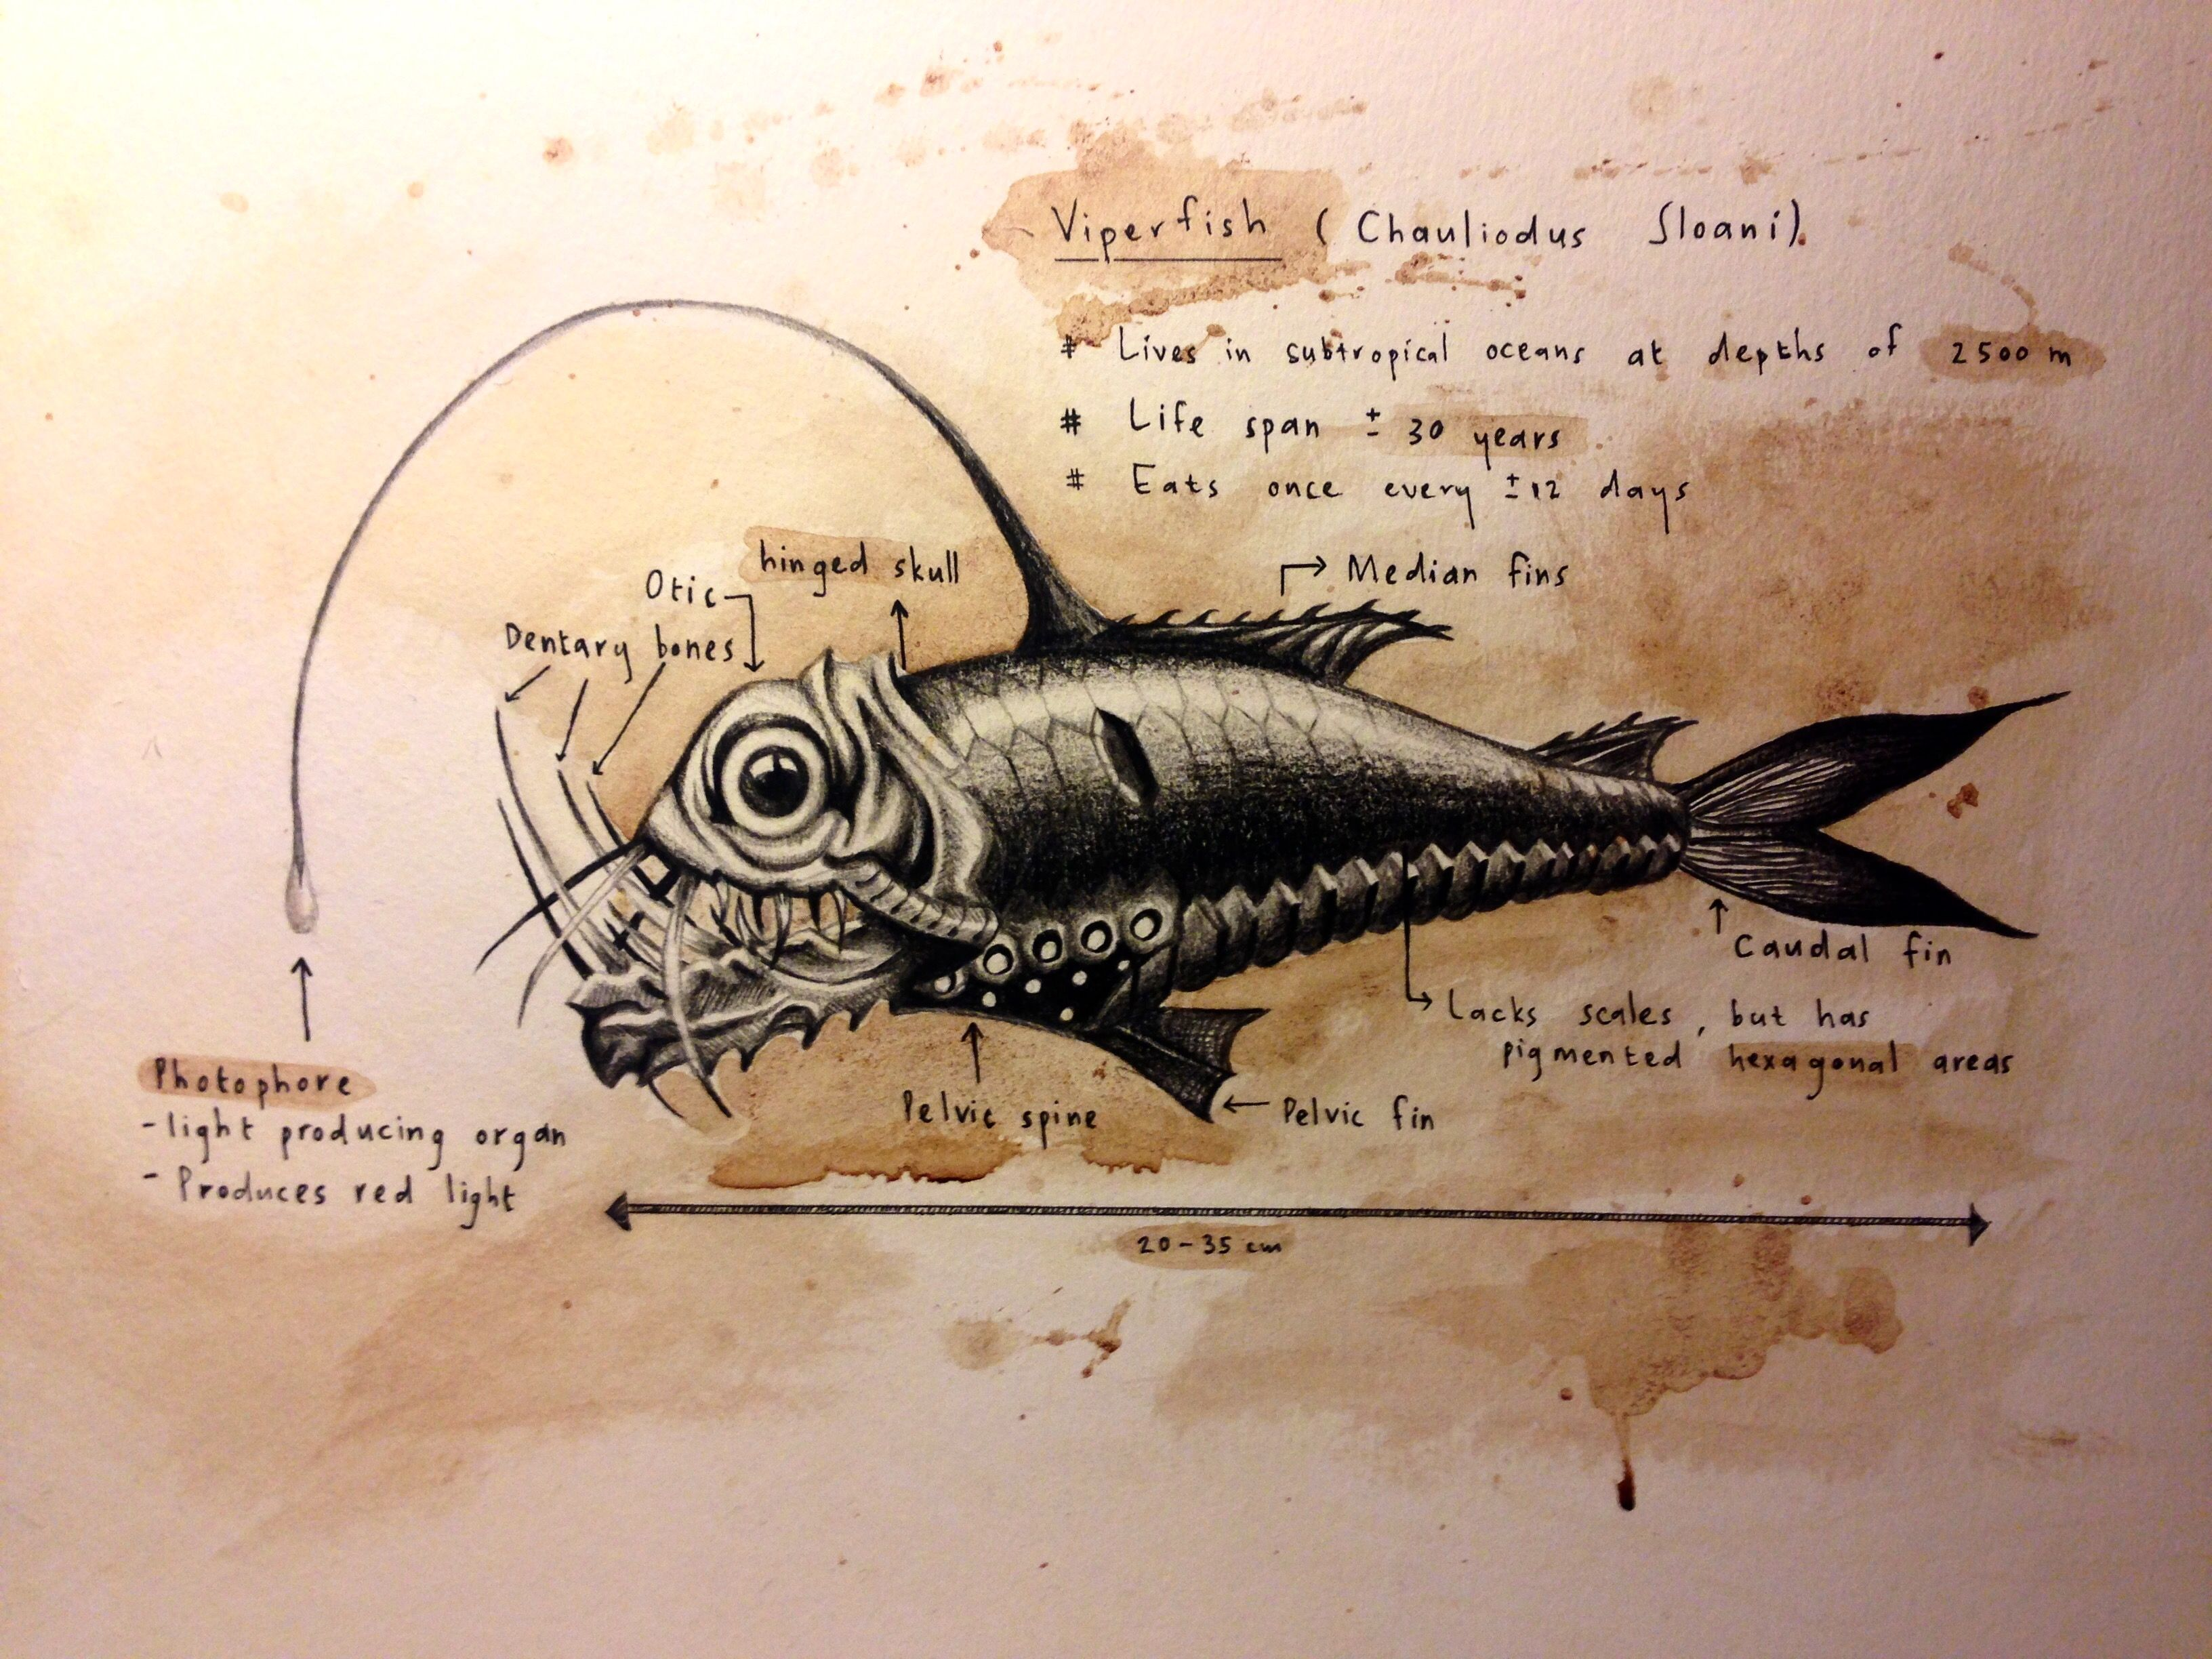 Viper fish. Charcoal and hot chocolate on paper by Lili Piek